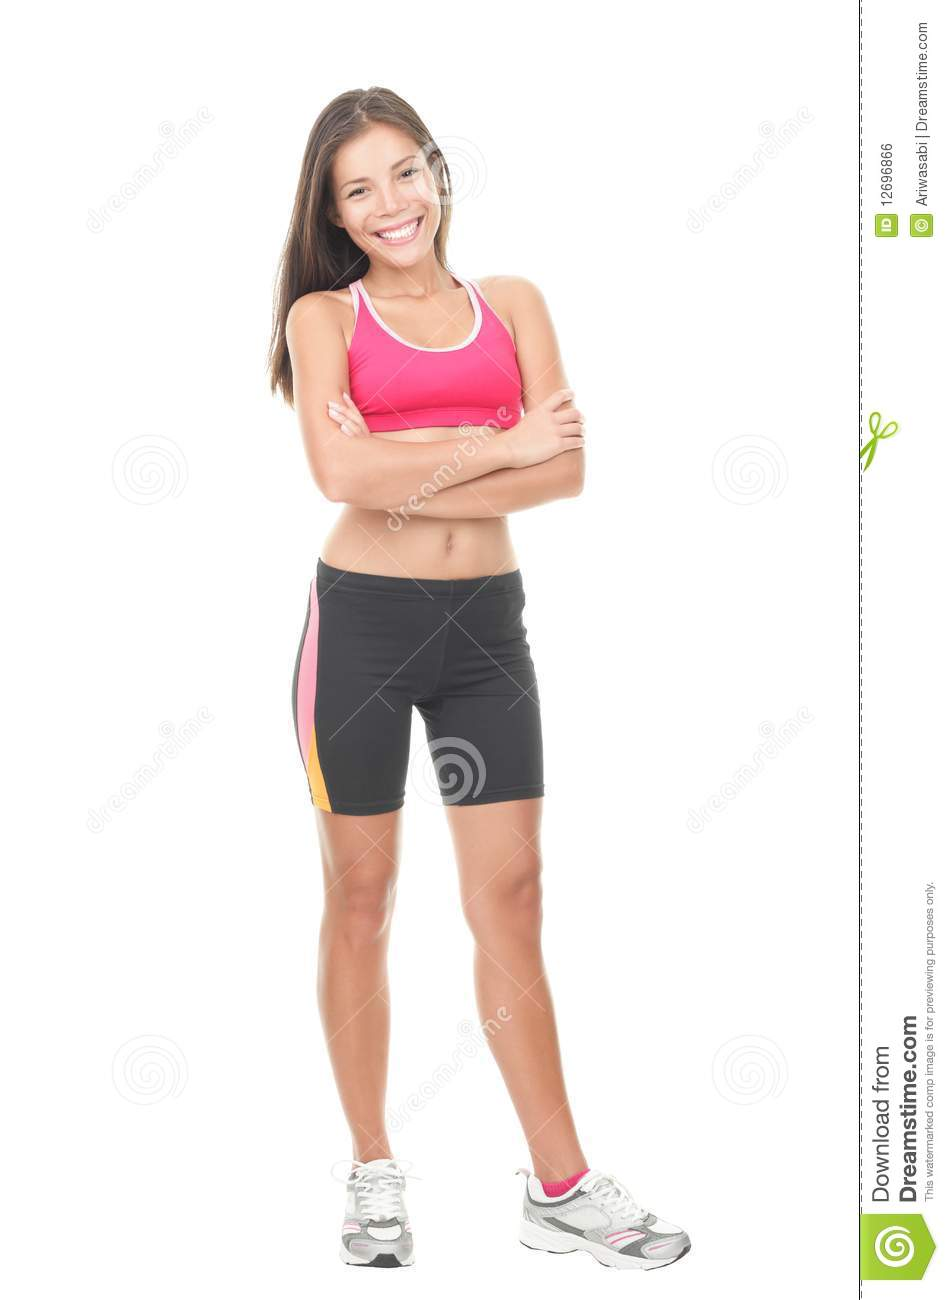 fitness woman full length stock photo image of healthy